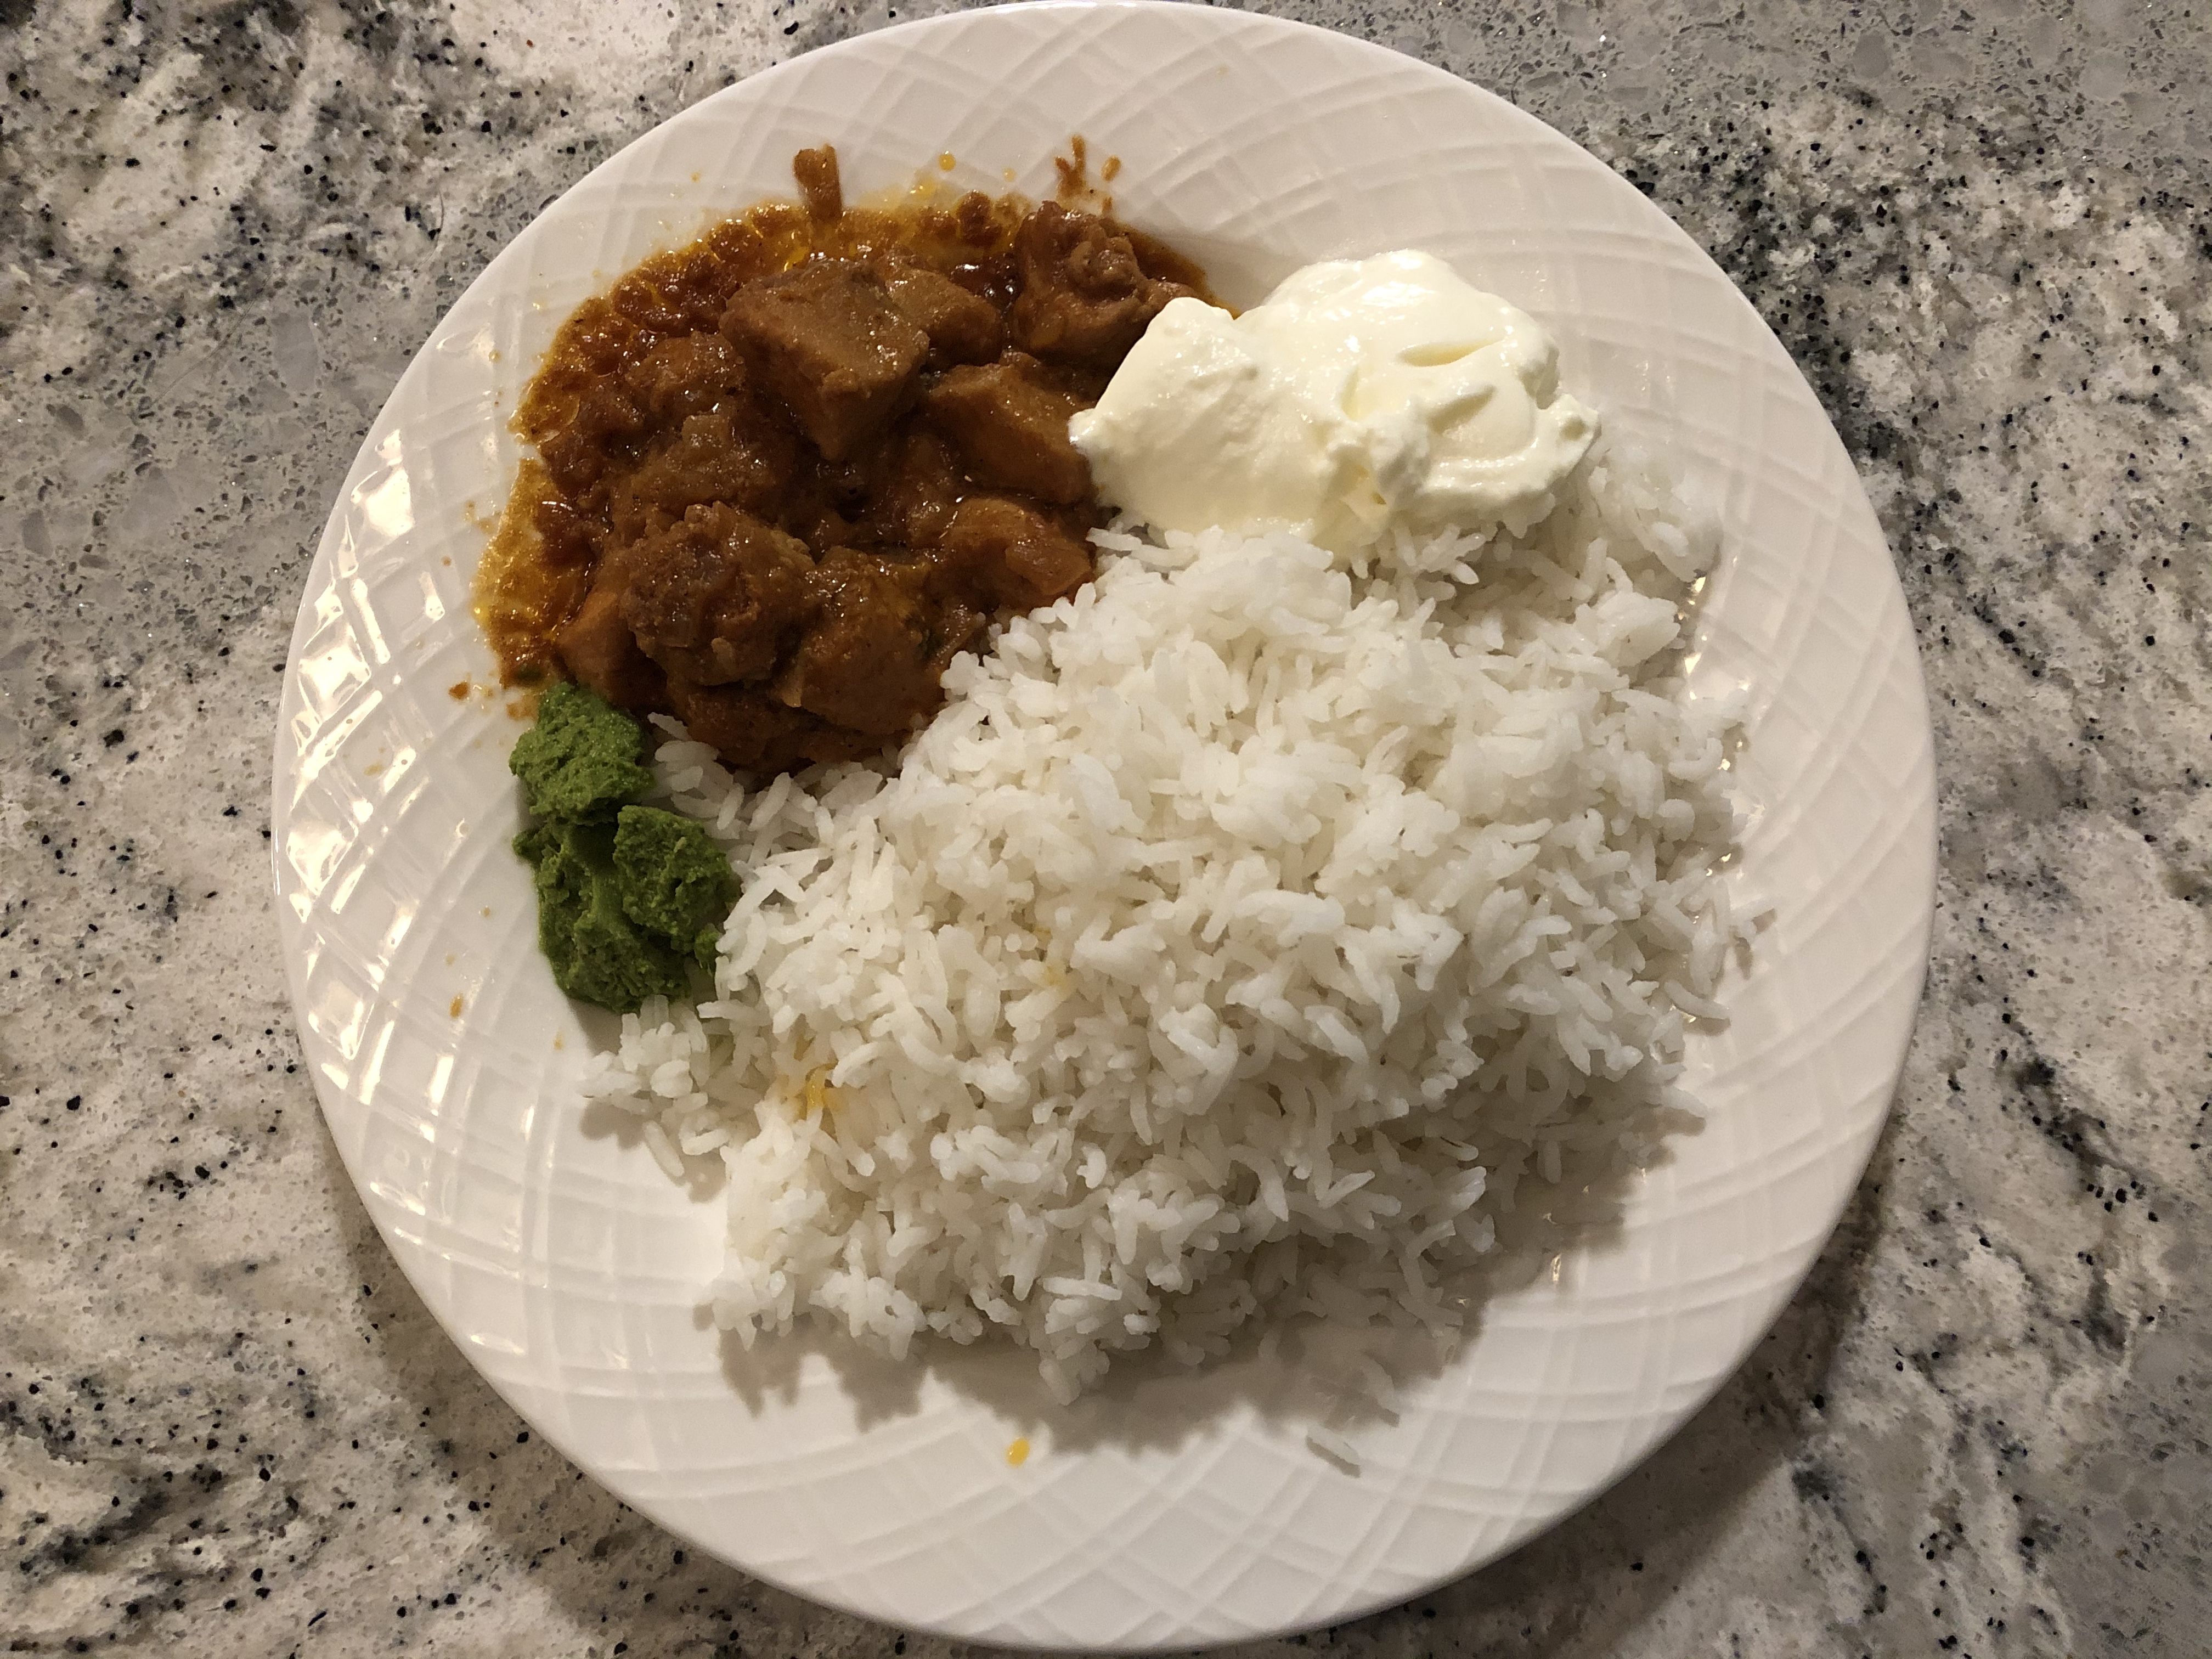 Butter chicken made by the author's mother along with white rice, yogurt and the author's mother's cilantro-based chutney.